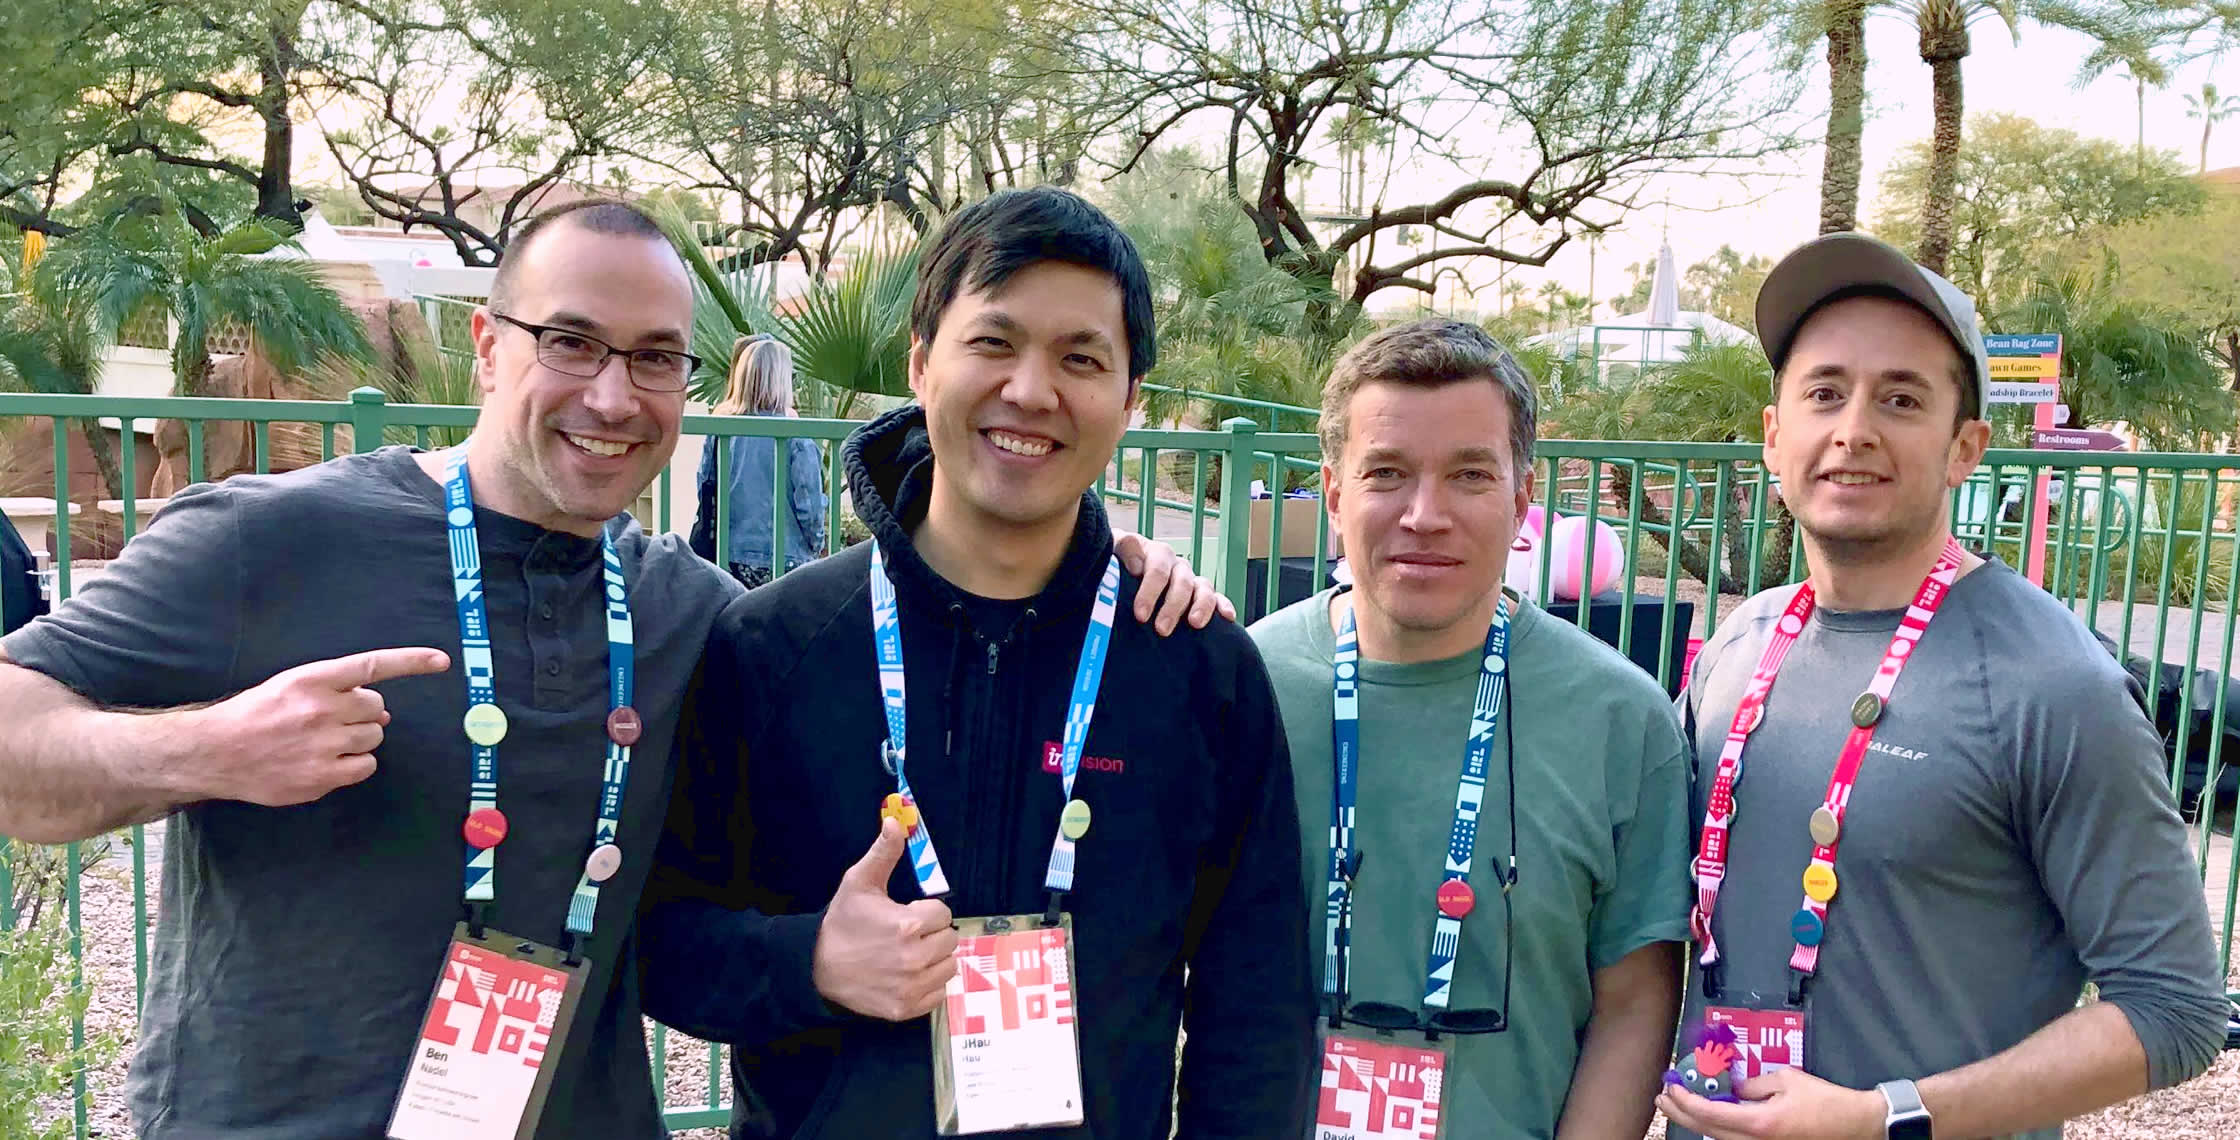 Ben Nadel at InVision In Real Life (IRL) 2019 (Phoenix, AZ) with: Jonathan Hau and David Bainbridge and Scott Markovits